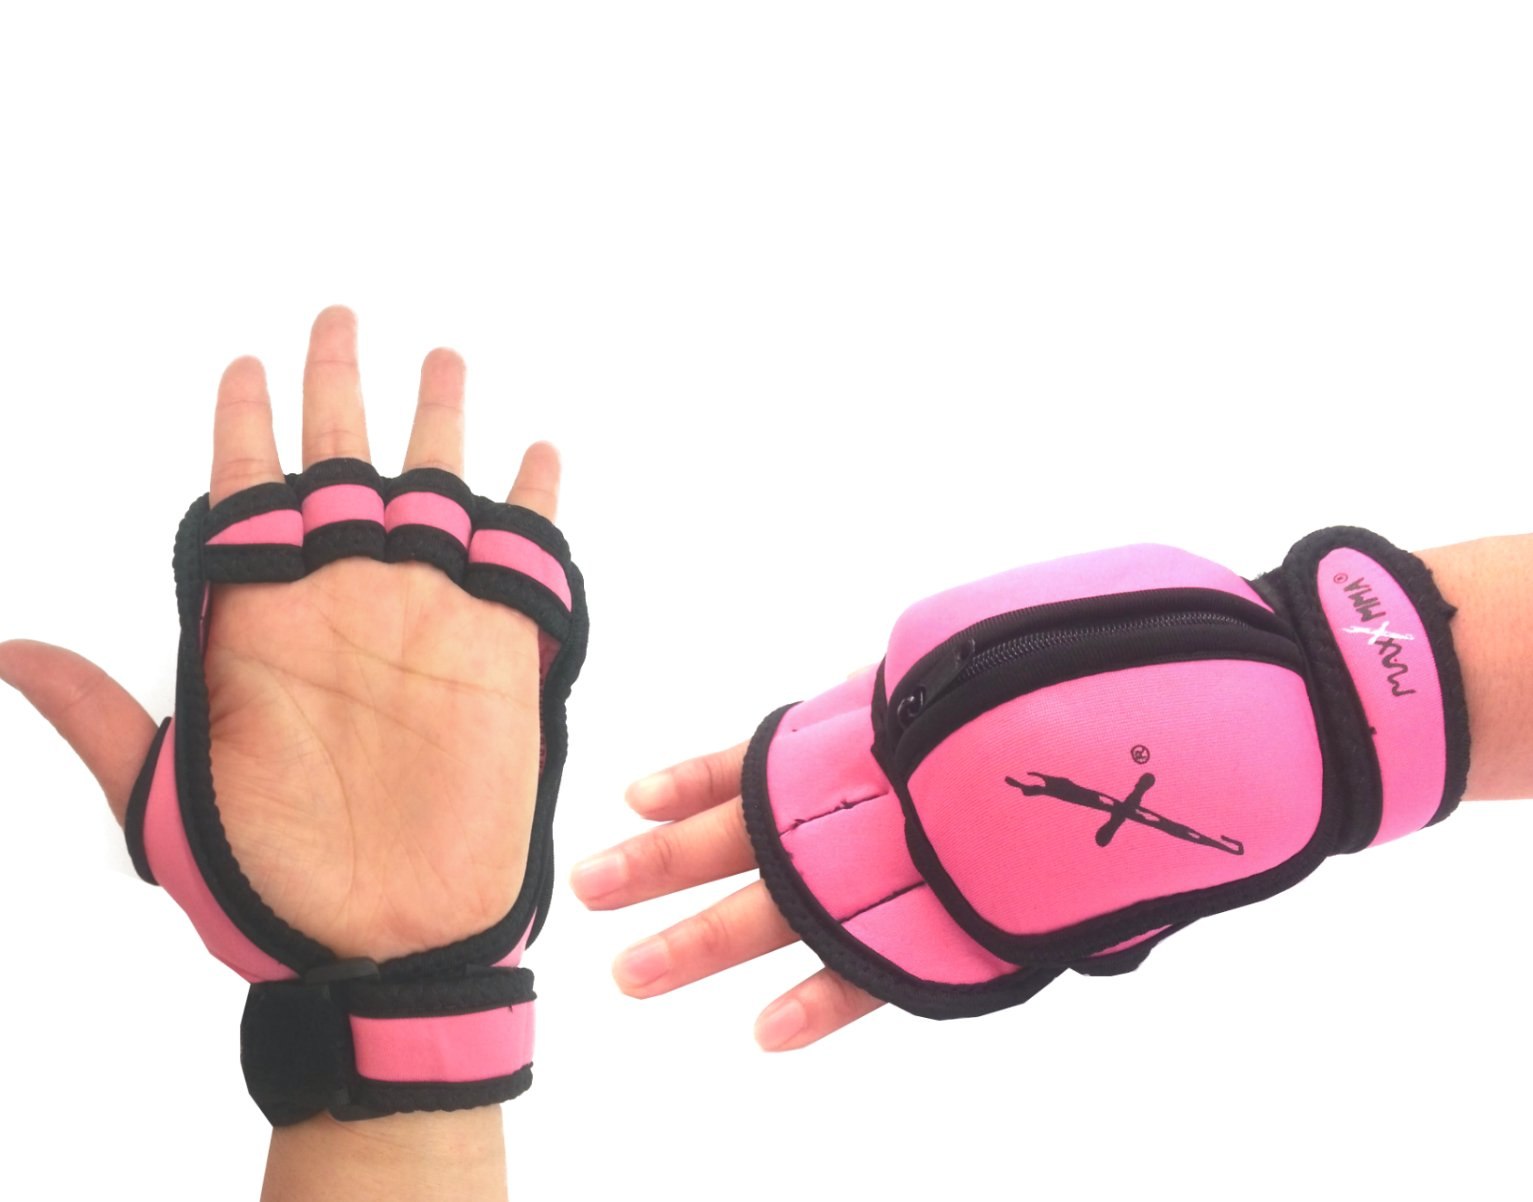 MaxxMMA Adjustable Weighted Gloves - Removable Weight 1 lb. x 2 (Pink)